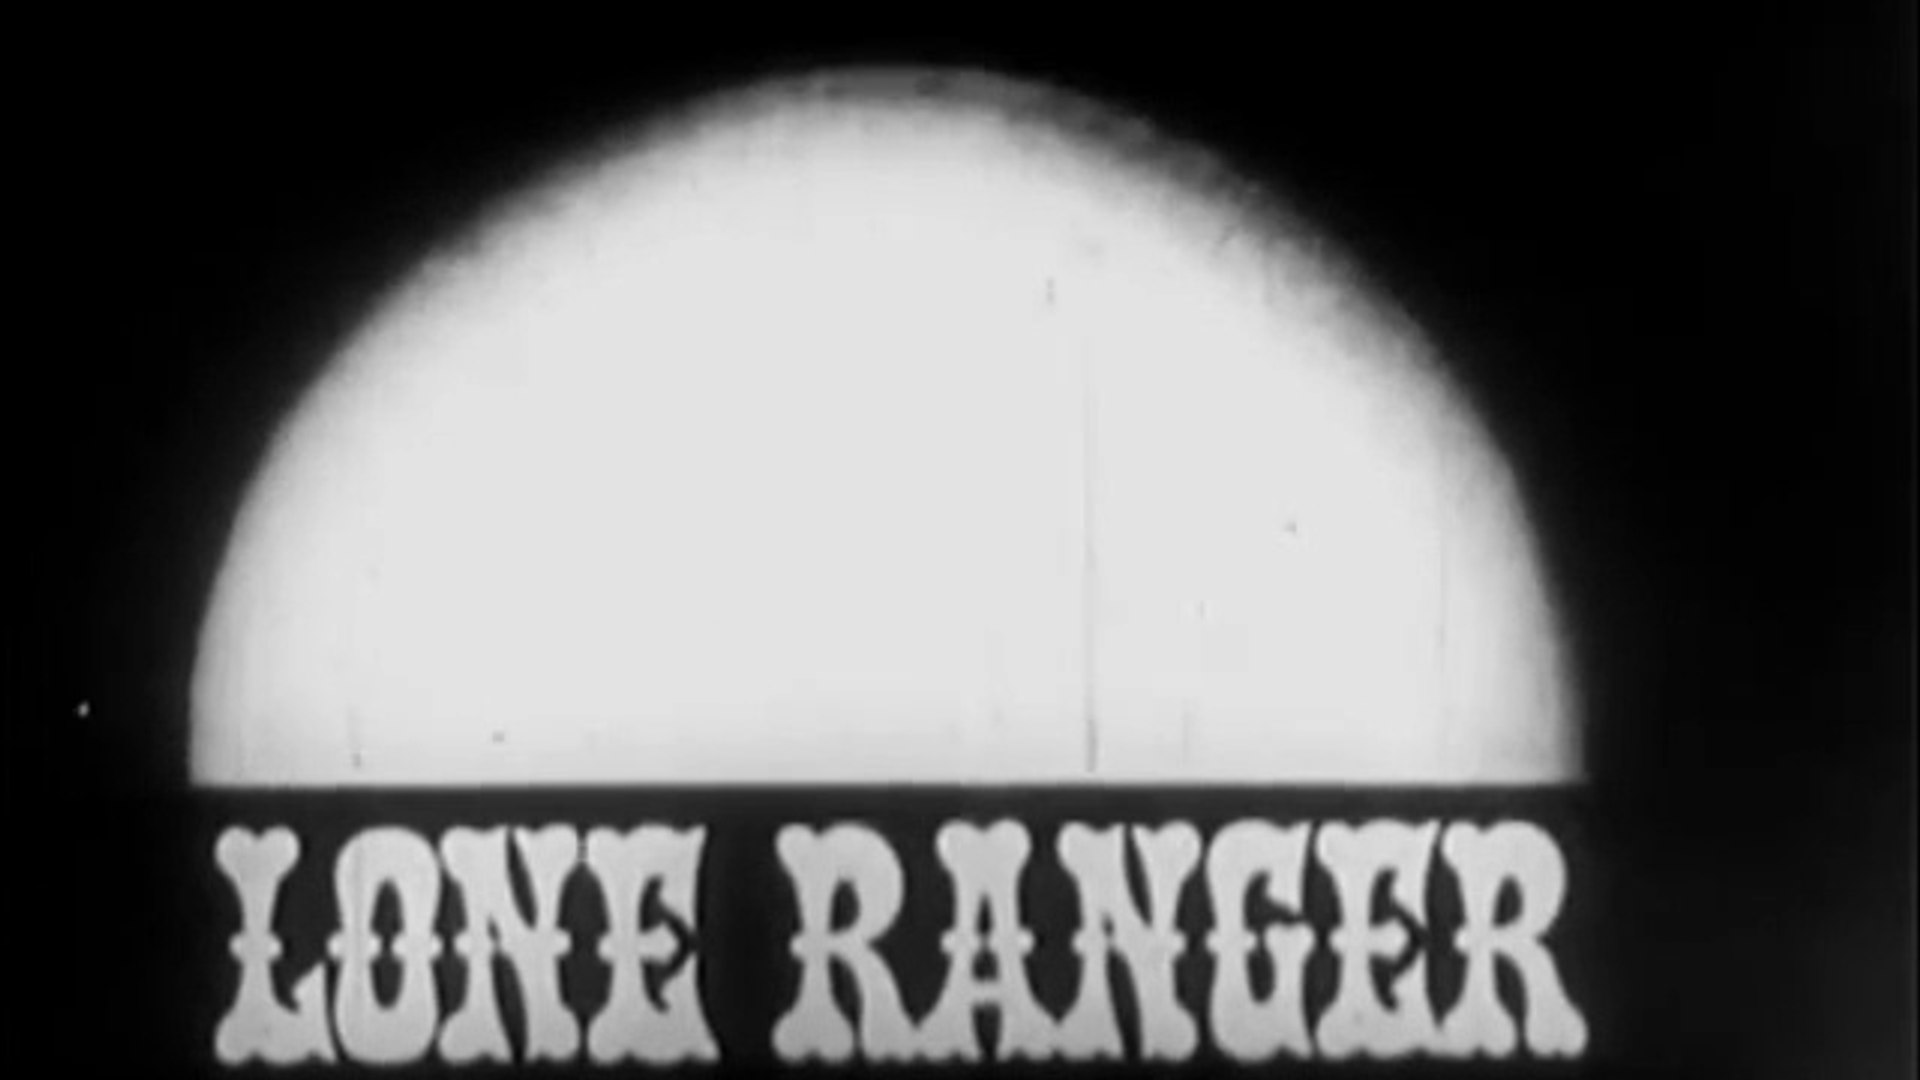 LONE RANGER (1968 - Featuring Pete Townshend) - video Dailymotion